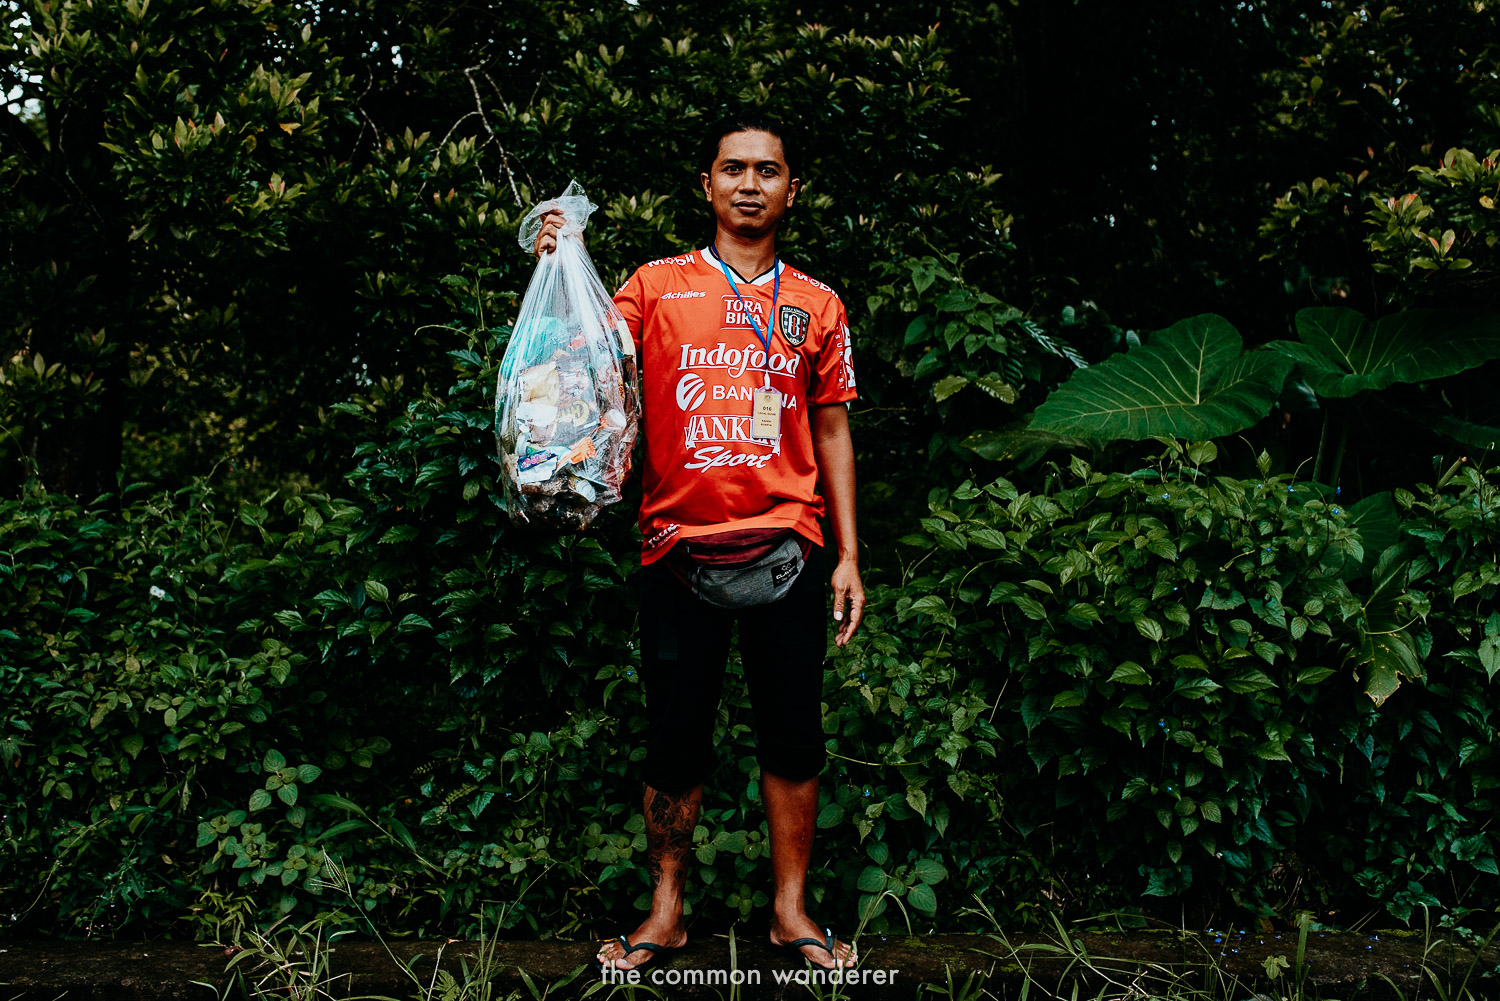 Our guide, Kadek, with a bag of rubbish we picked up in Sekumpul Waterfall, Bali